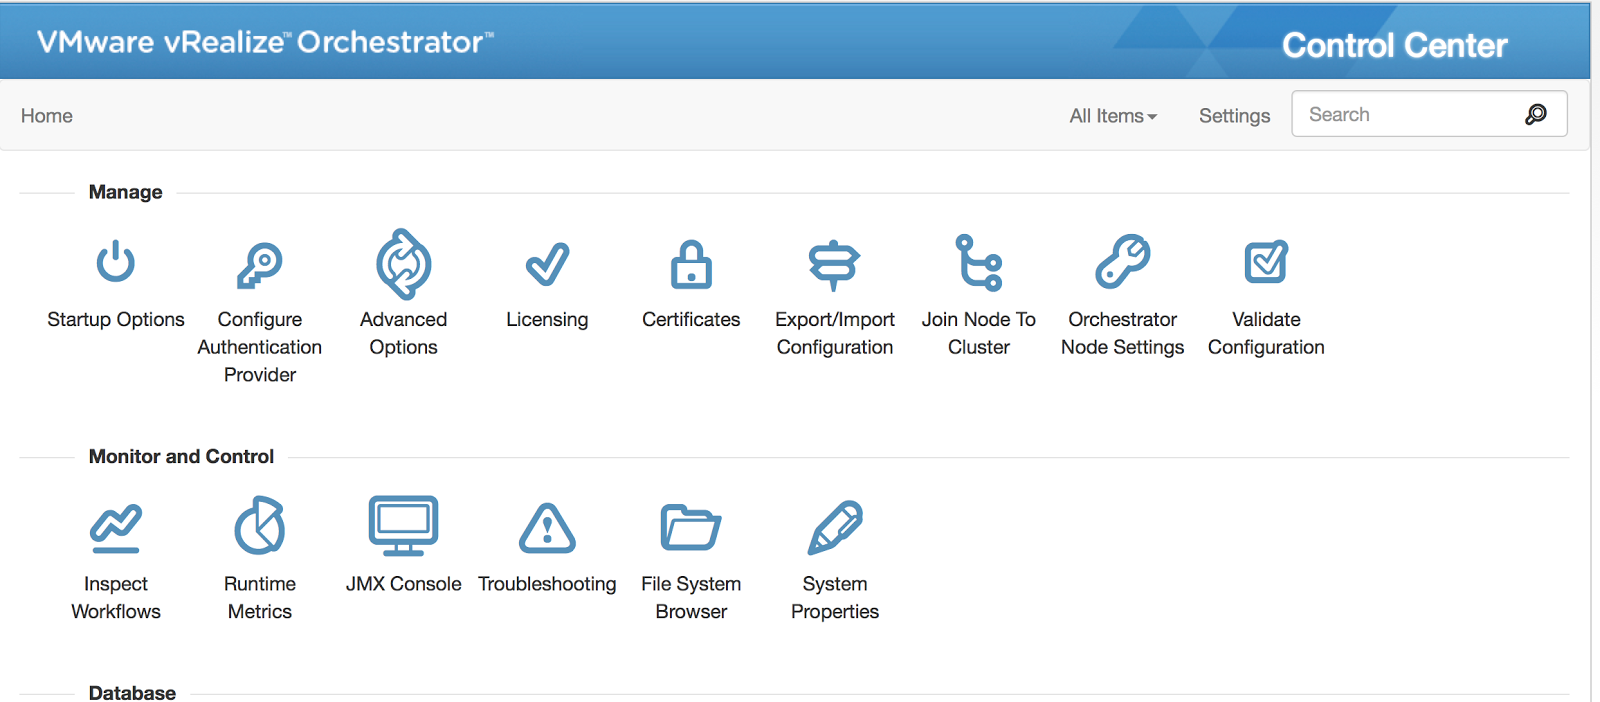 Just Another IT blog: Enable vRealize Orchestrator Control